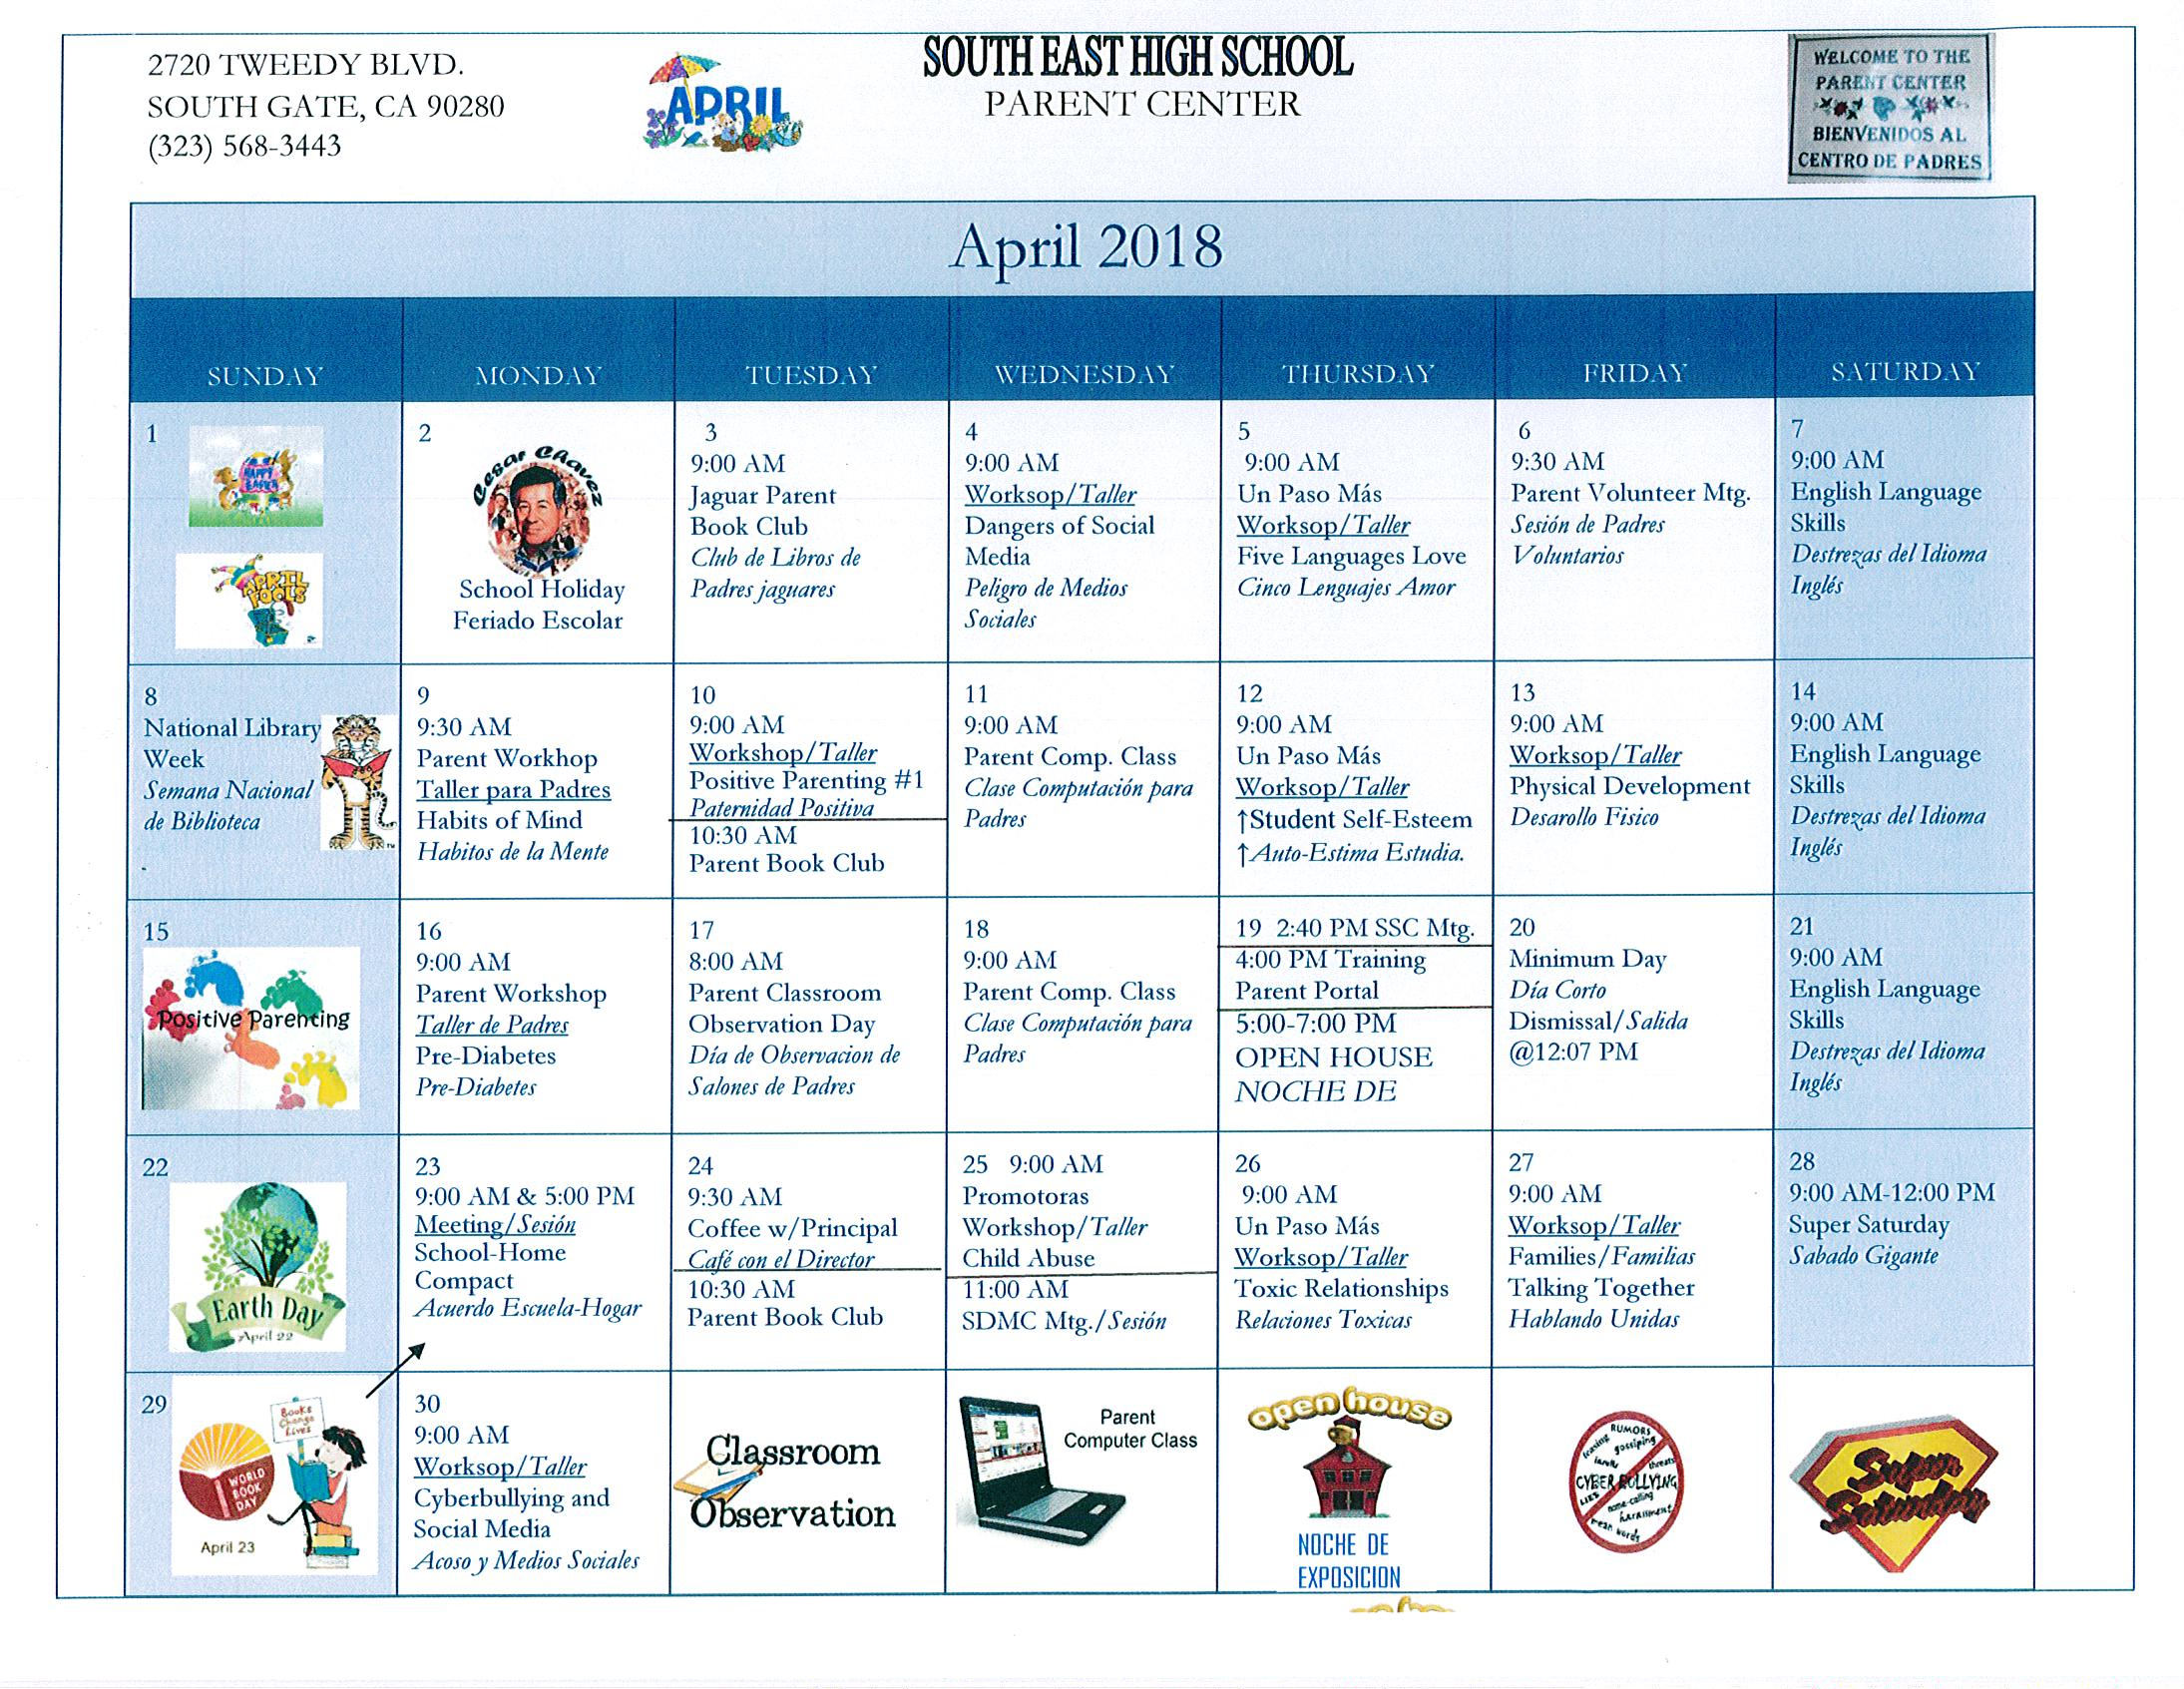 Parent Center Calendar/Calendario del Centro de Padres